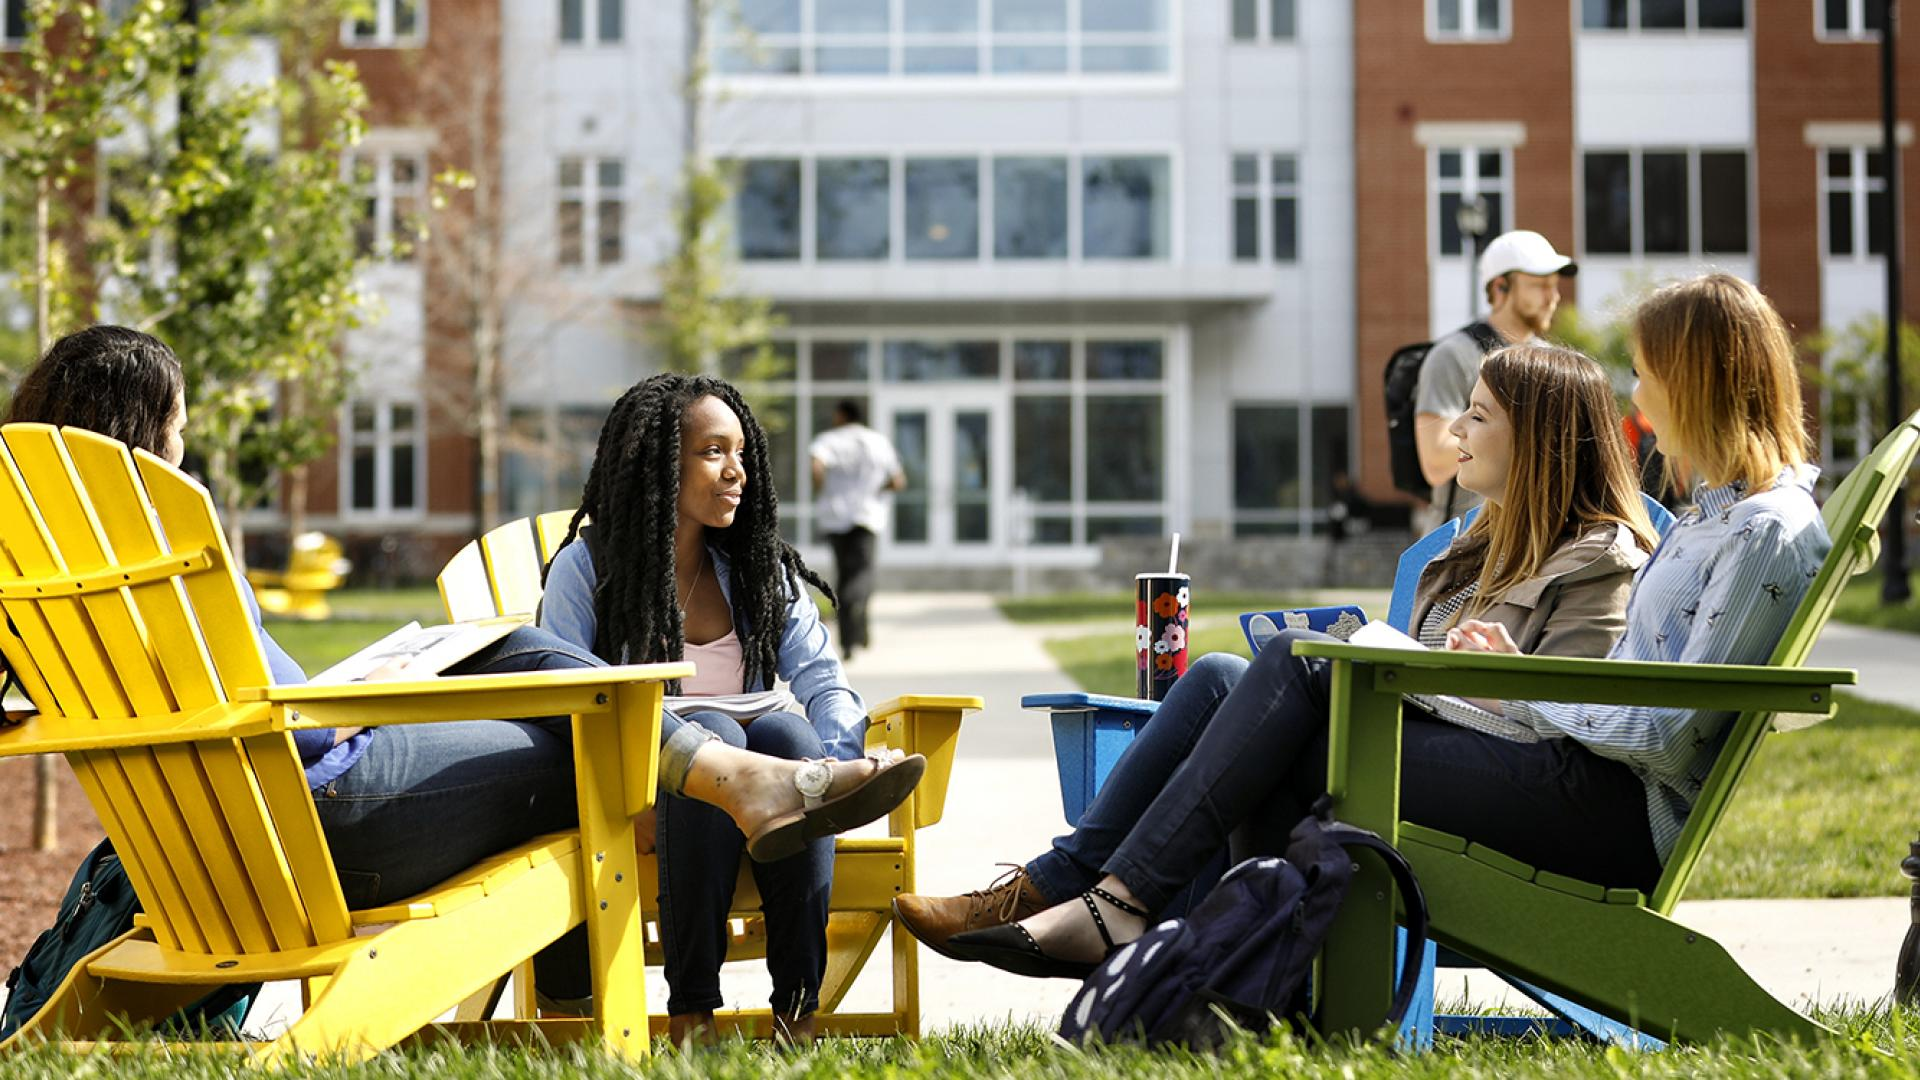 Female Students in Adorondick Chairs Enjoying a Sunny Day on a Residence Hall Lawn